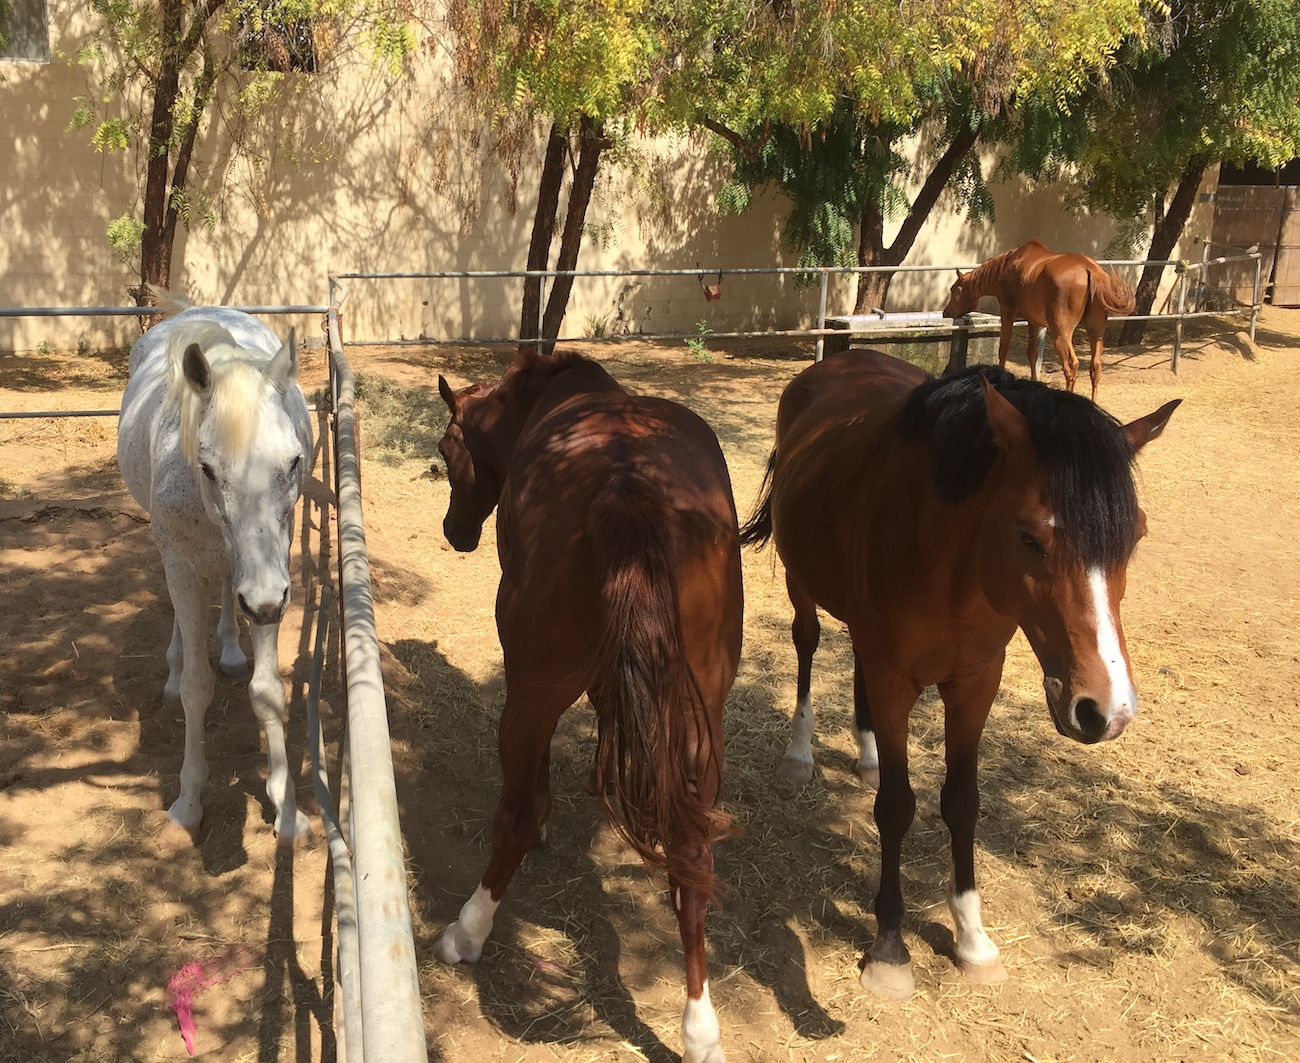 stallions, free horses, paddock, stable design